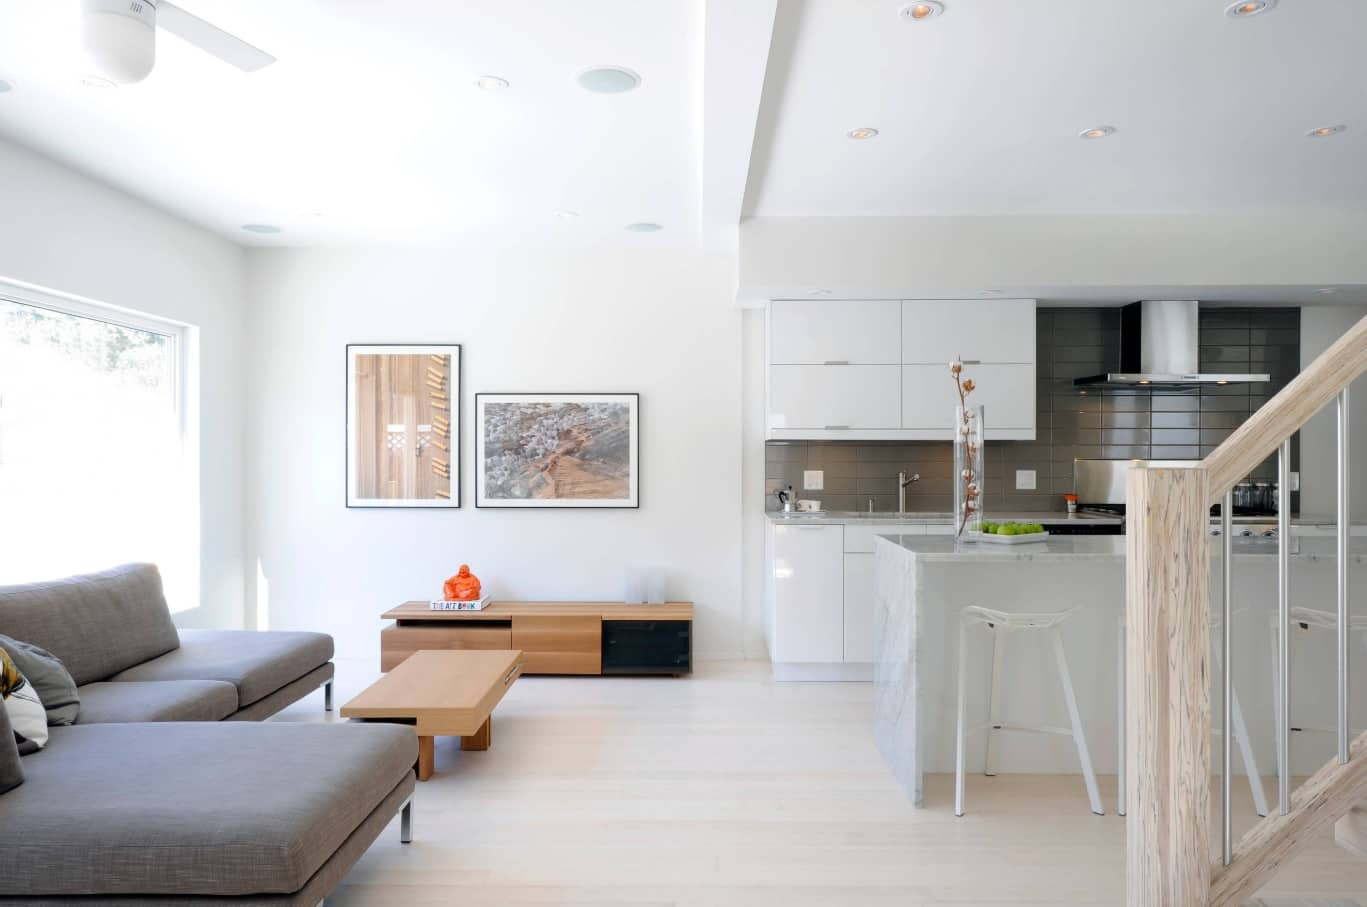 Casual white interior of the open layout apartment with kitchen zone and living